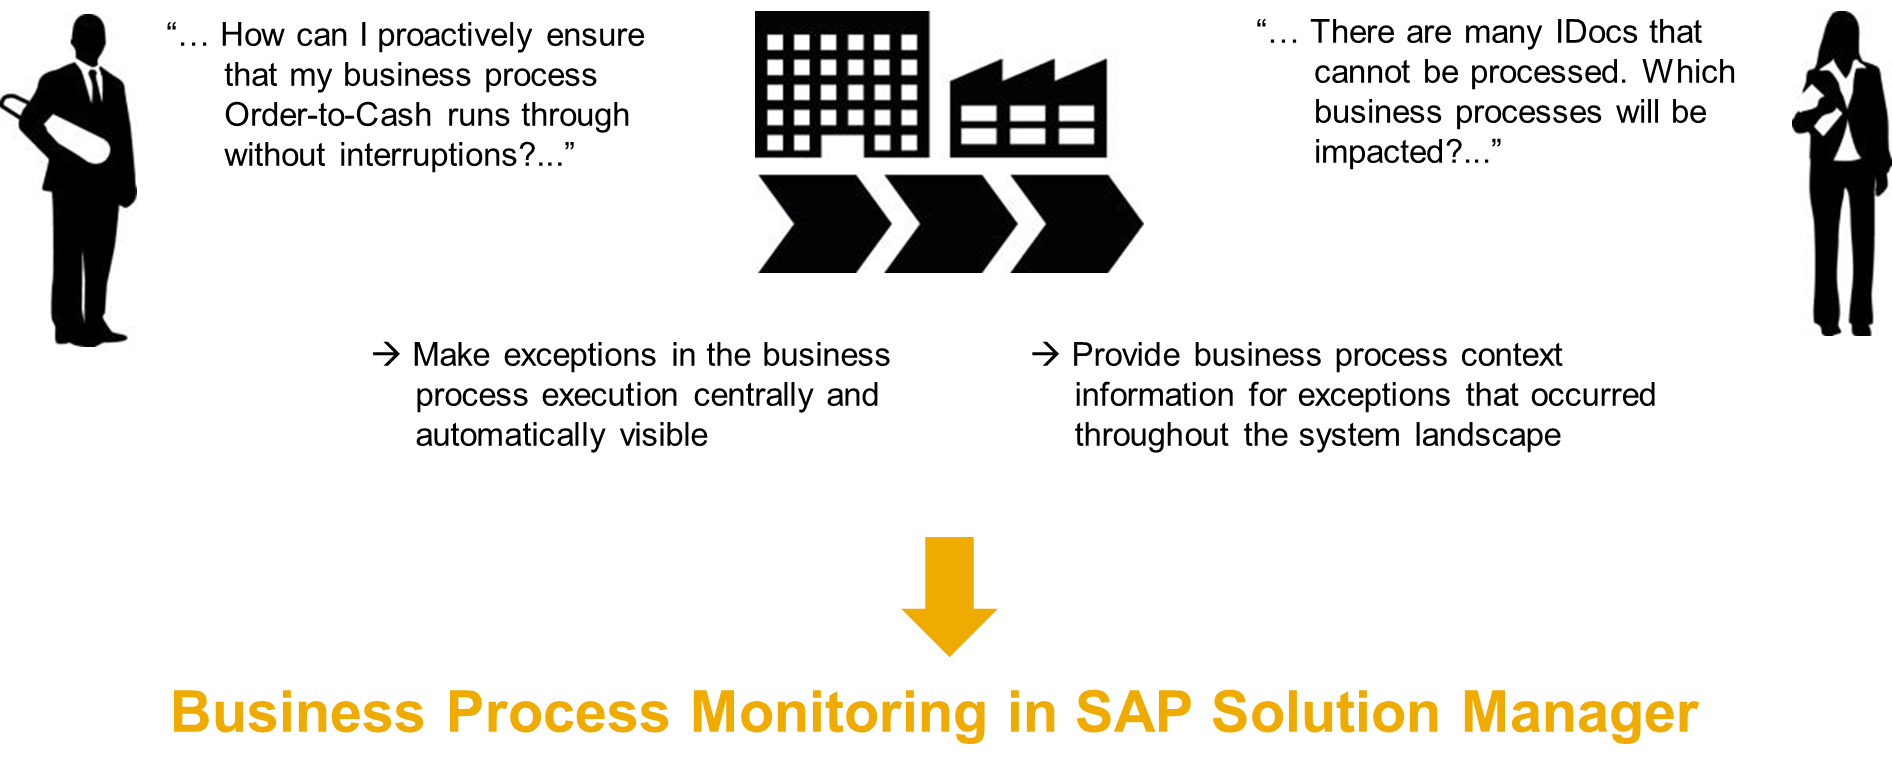 Process Flow Diagram Wikipedia Business Monitoring Solution Manager Scn Wiki Sap Provides A Central And Automatic Tool For Bpmon On Helps You To Avoid Manual